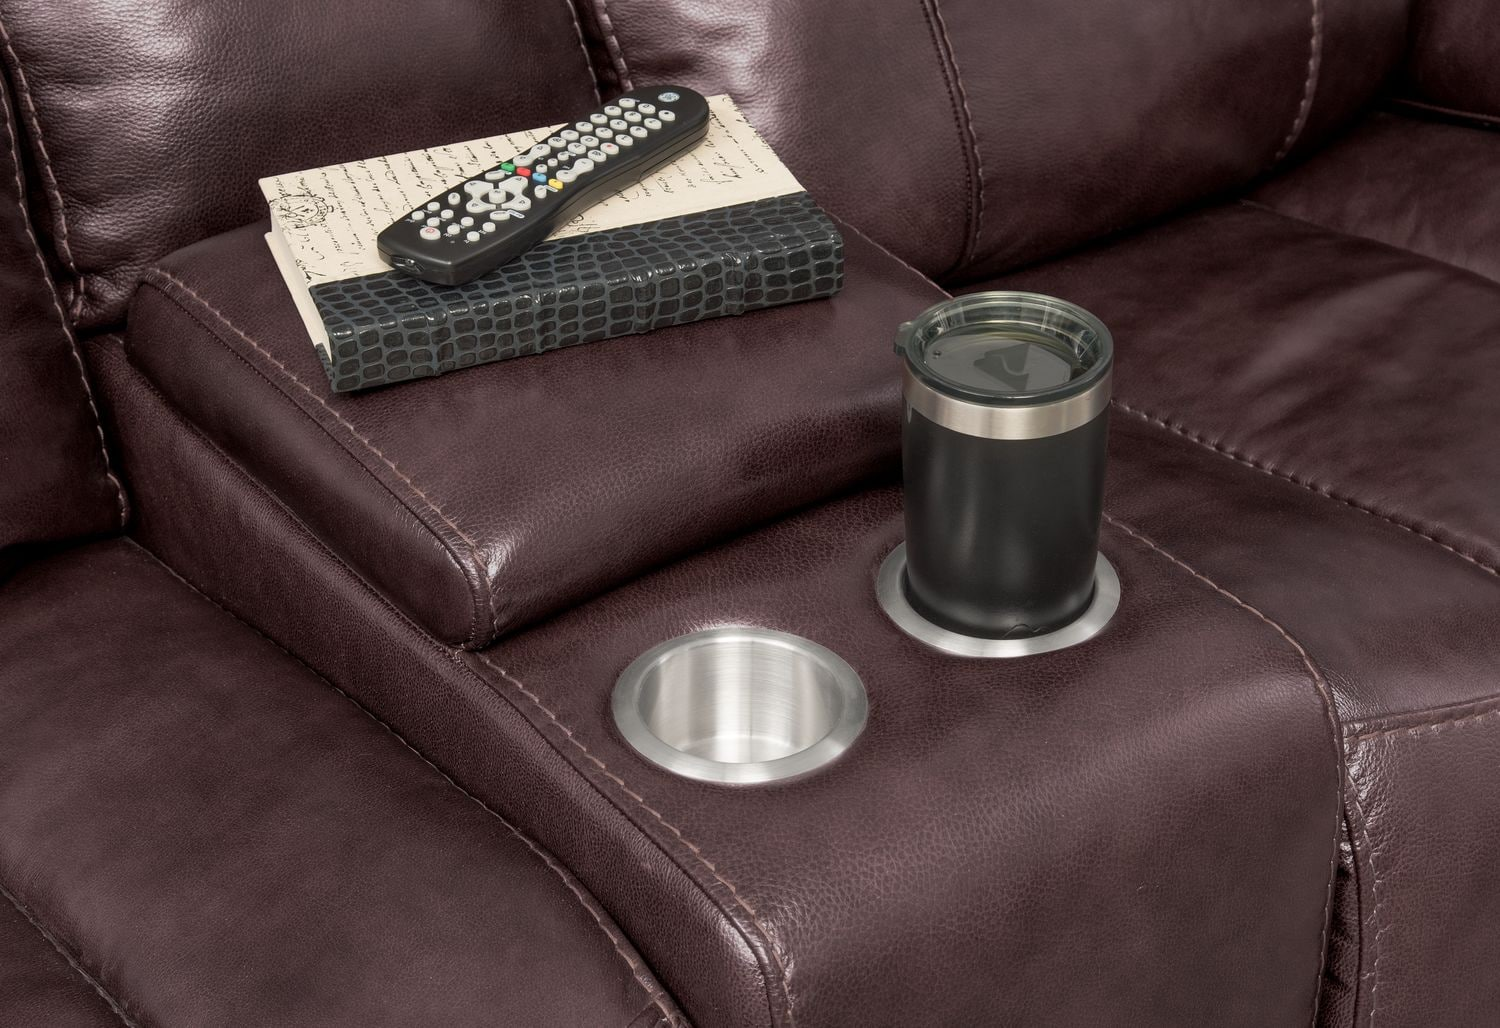 Monte Carlo Dual Power Reclining Sofa Reclining Loveseat And Recliner Set Chocolate